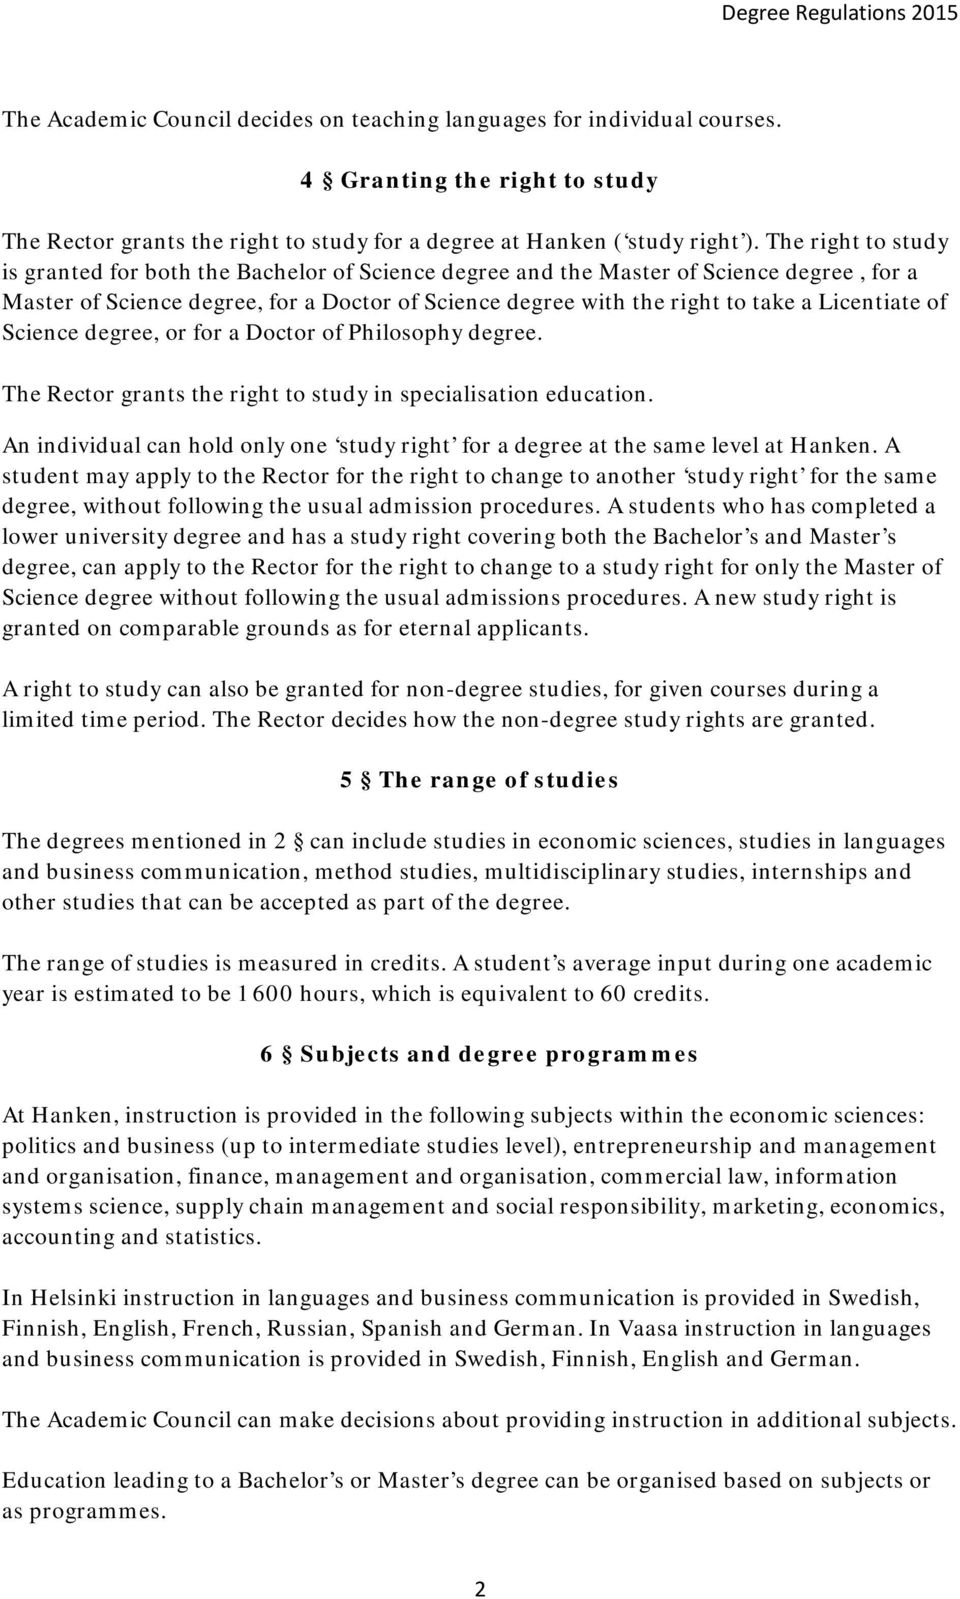 Licentiate of Science degree, or for a Doctor of Philosophy degree. The Rector grants the right to study in specialisation education.